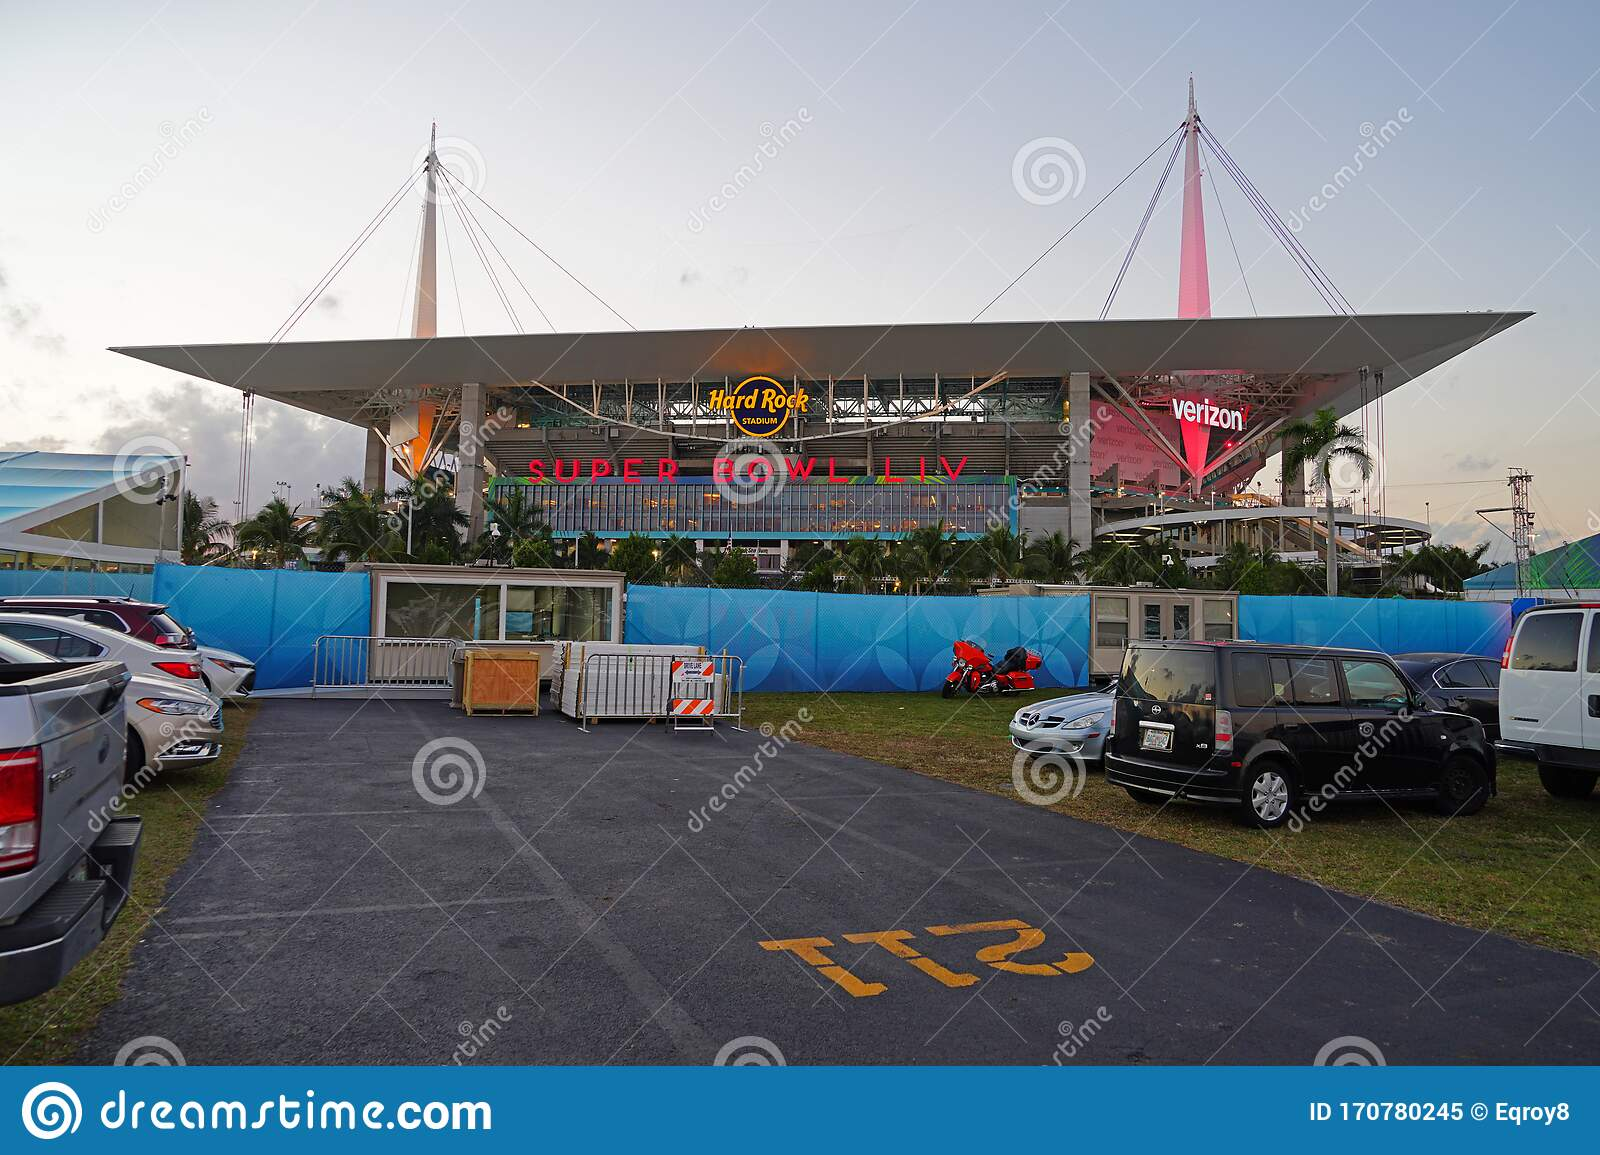 view of the hard rock stadium, located in miami gardens